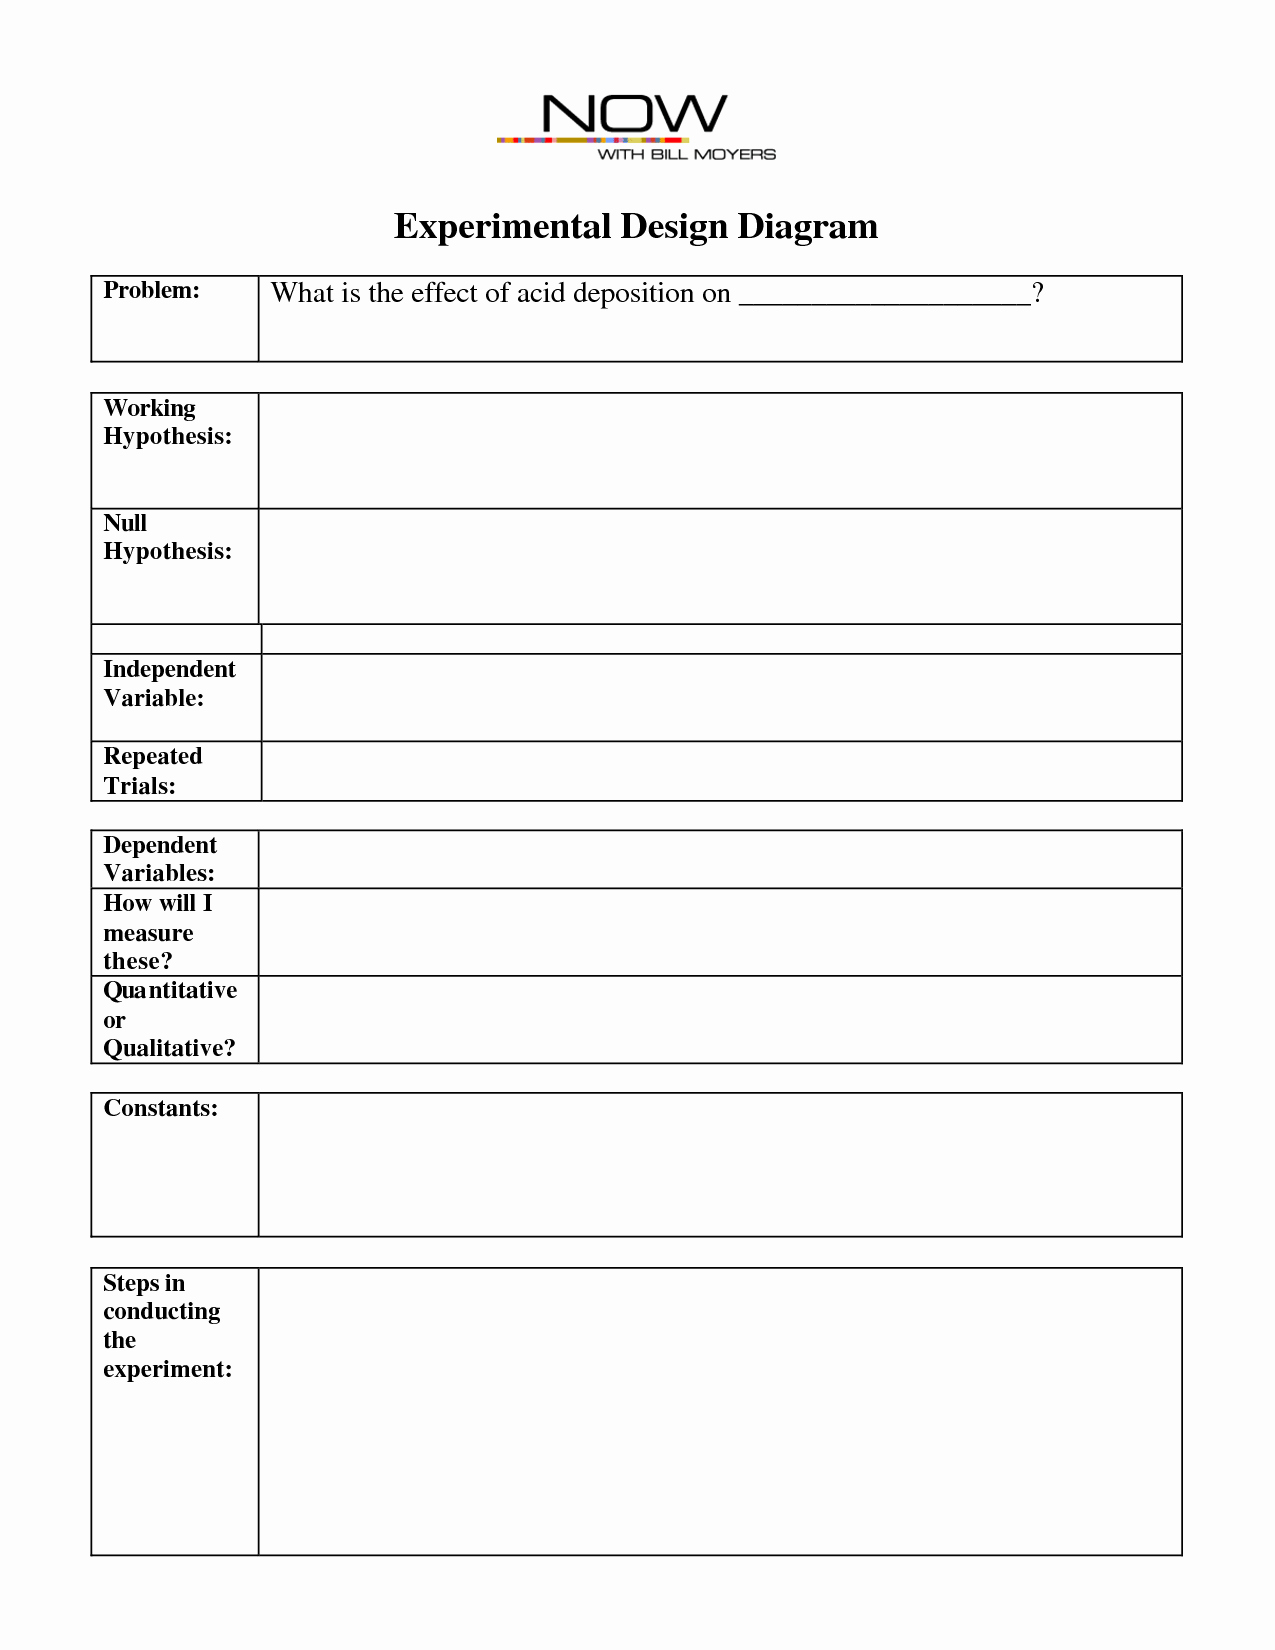 Experimental Design Worksheet Answers Elegant Other Worksheet Category Page 318 Worksheeto